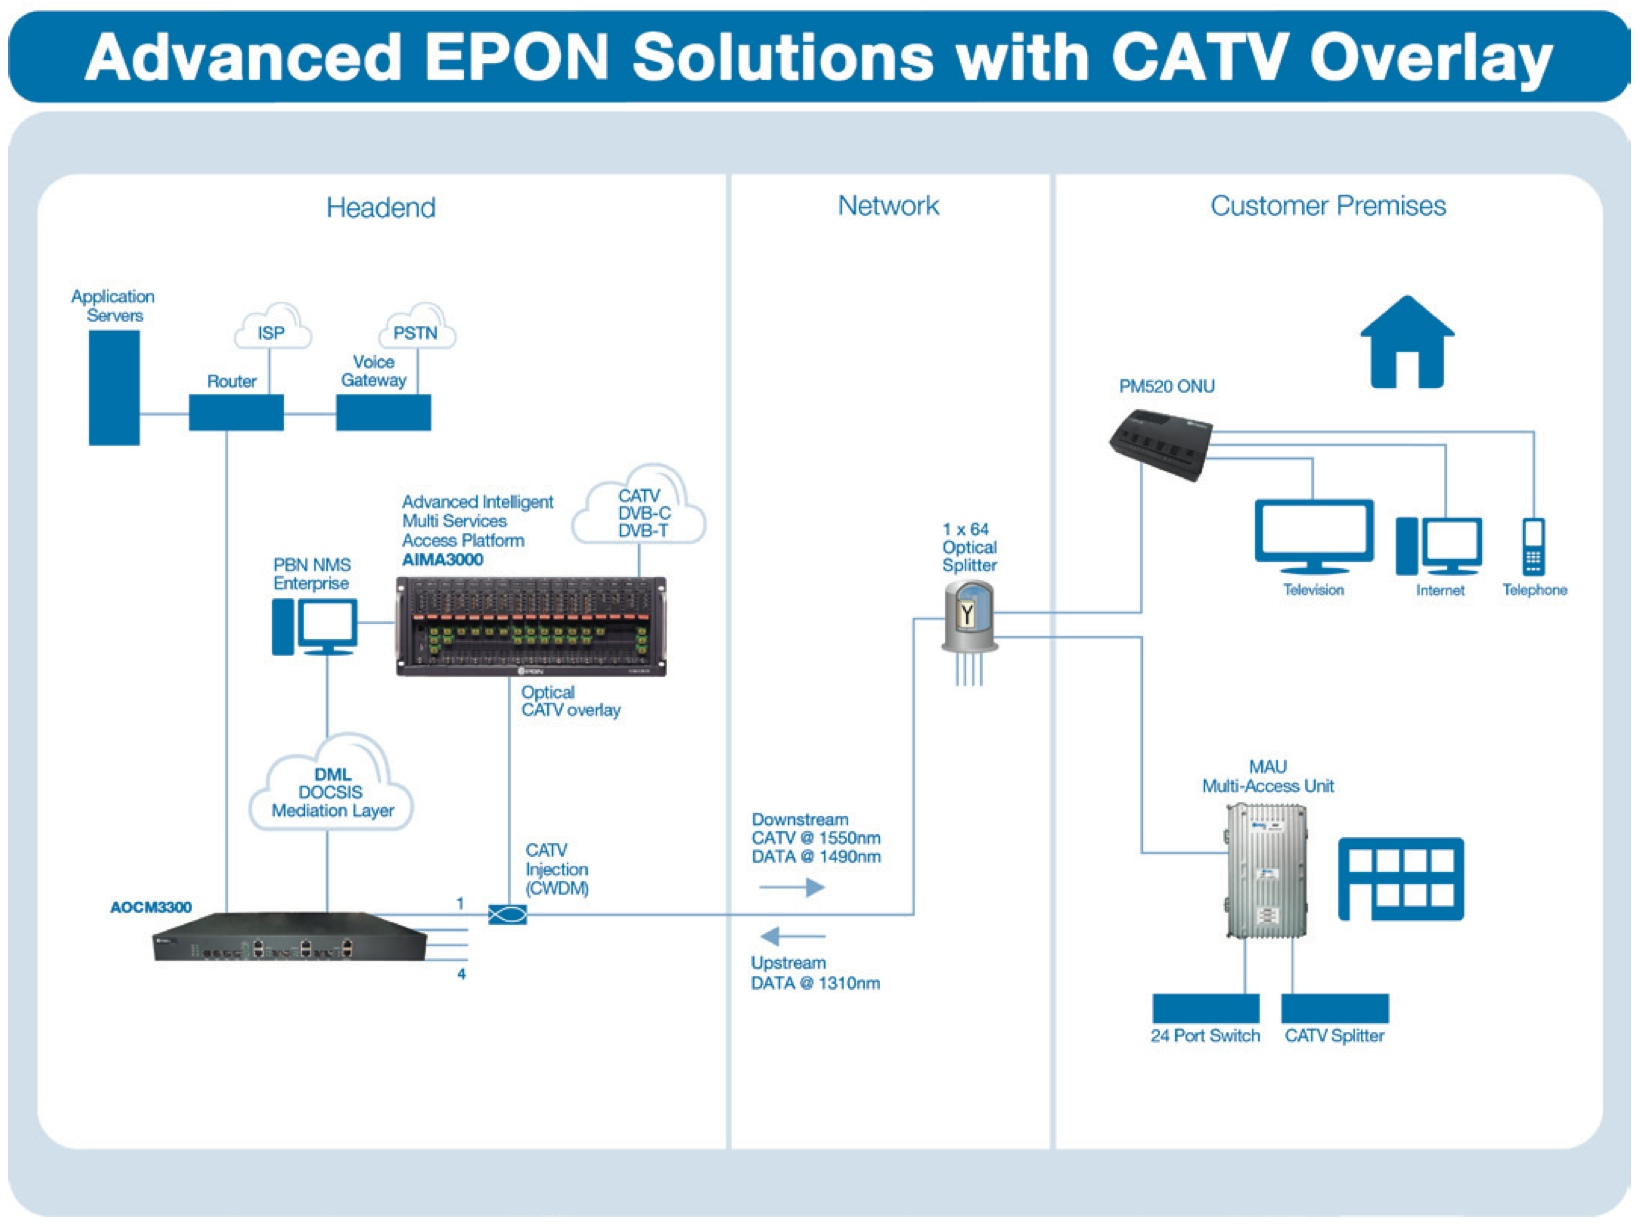 Pbn Products Pm520 Rj11 Wiring Diagram Duplex Operation For The Catv Overlay Components Pbns 1ru Edfa And Lte Product Line Can Be Used Instead Of Larger Aima3000 Carrier Grade Rf Headend Solution Based On